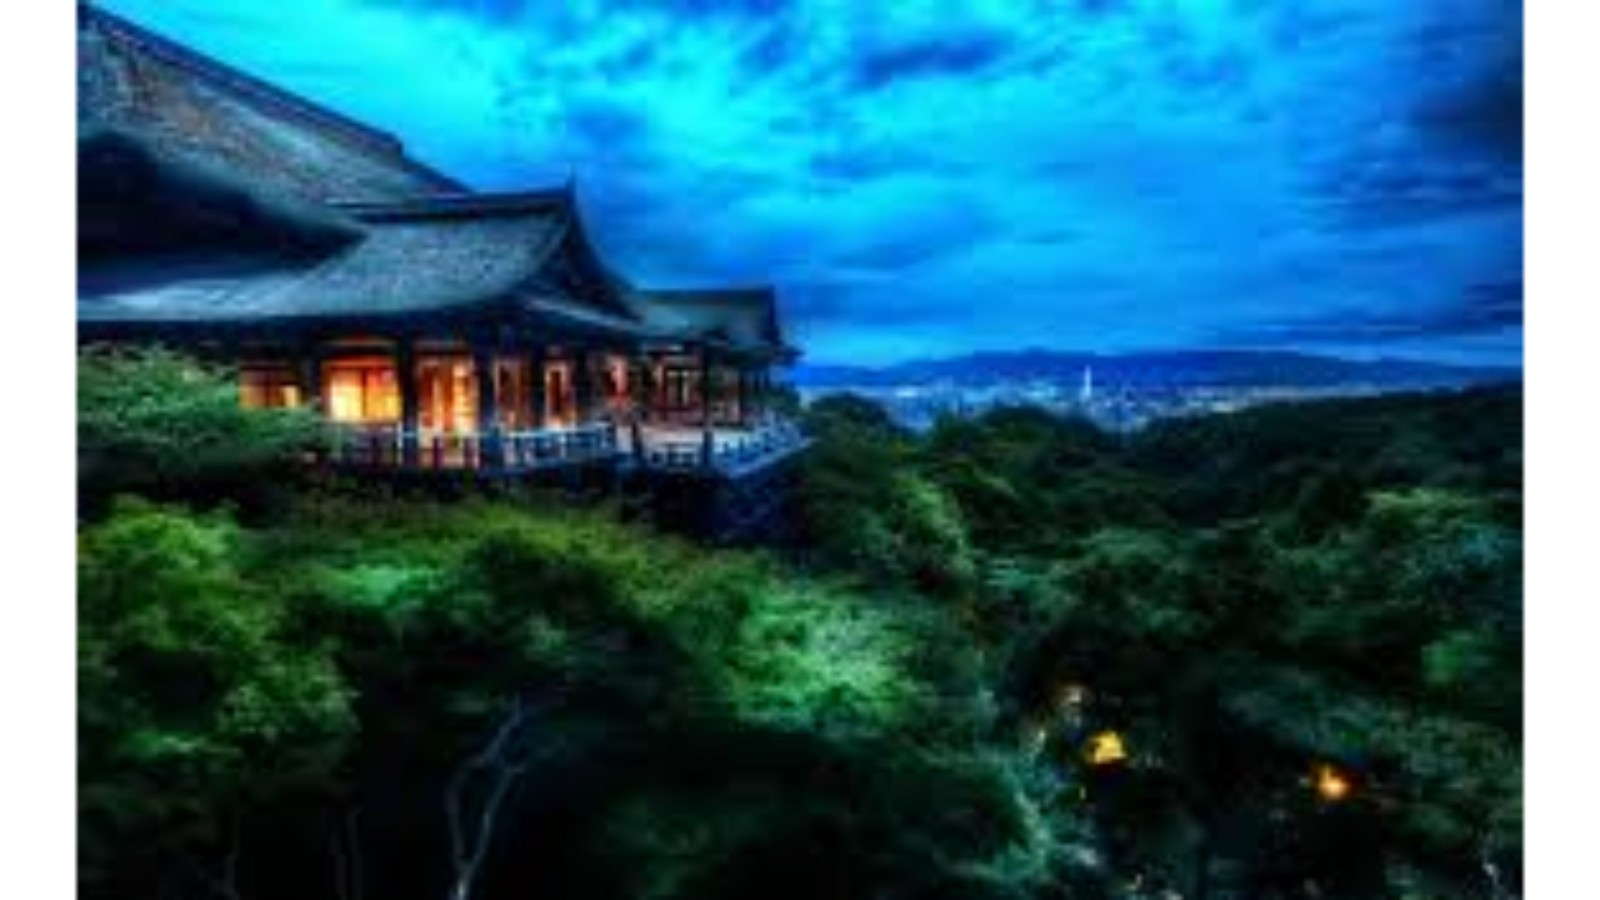 download Trending 2016 Kyoto Japan 4K Wallpaper 4K Wallpaper 1600x900